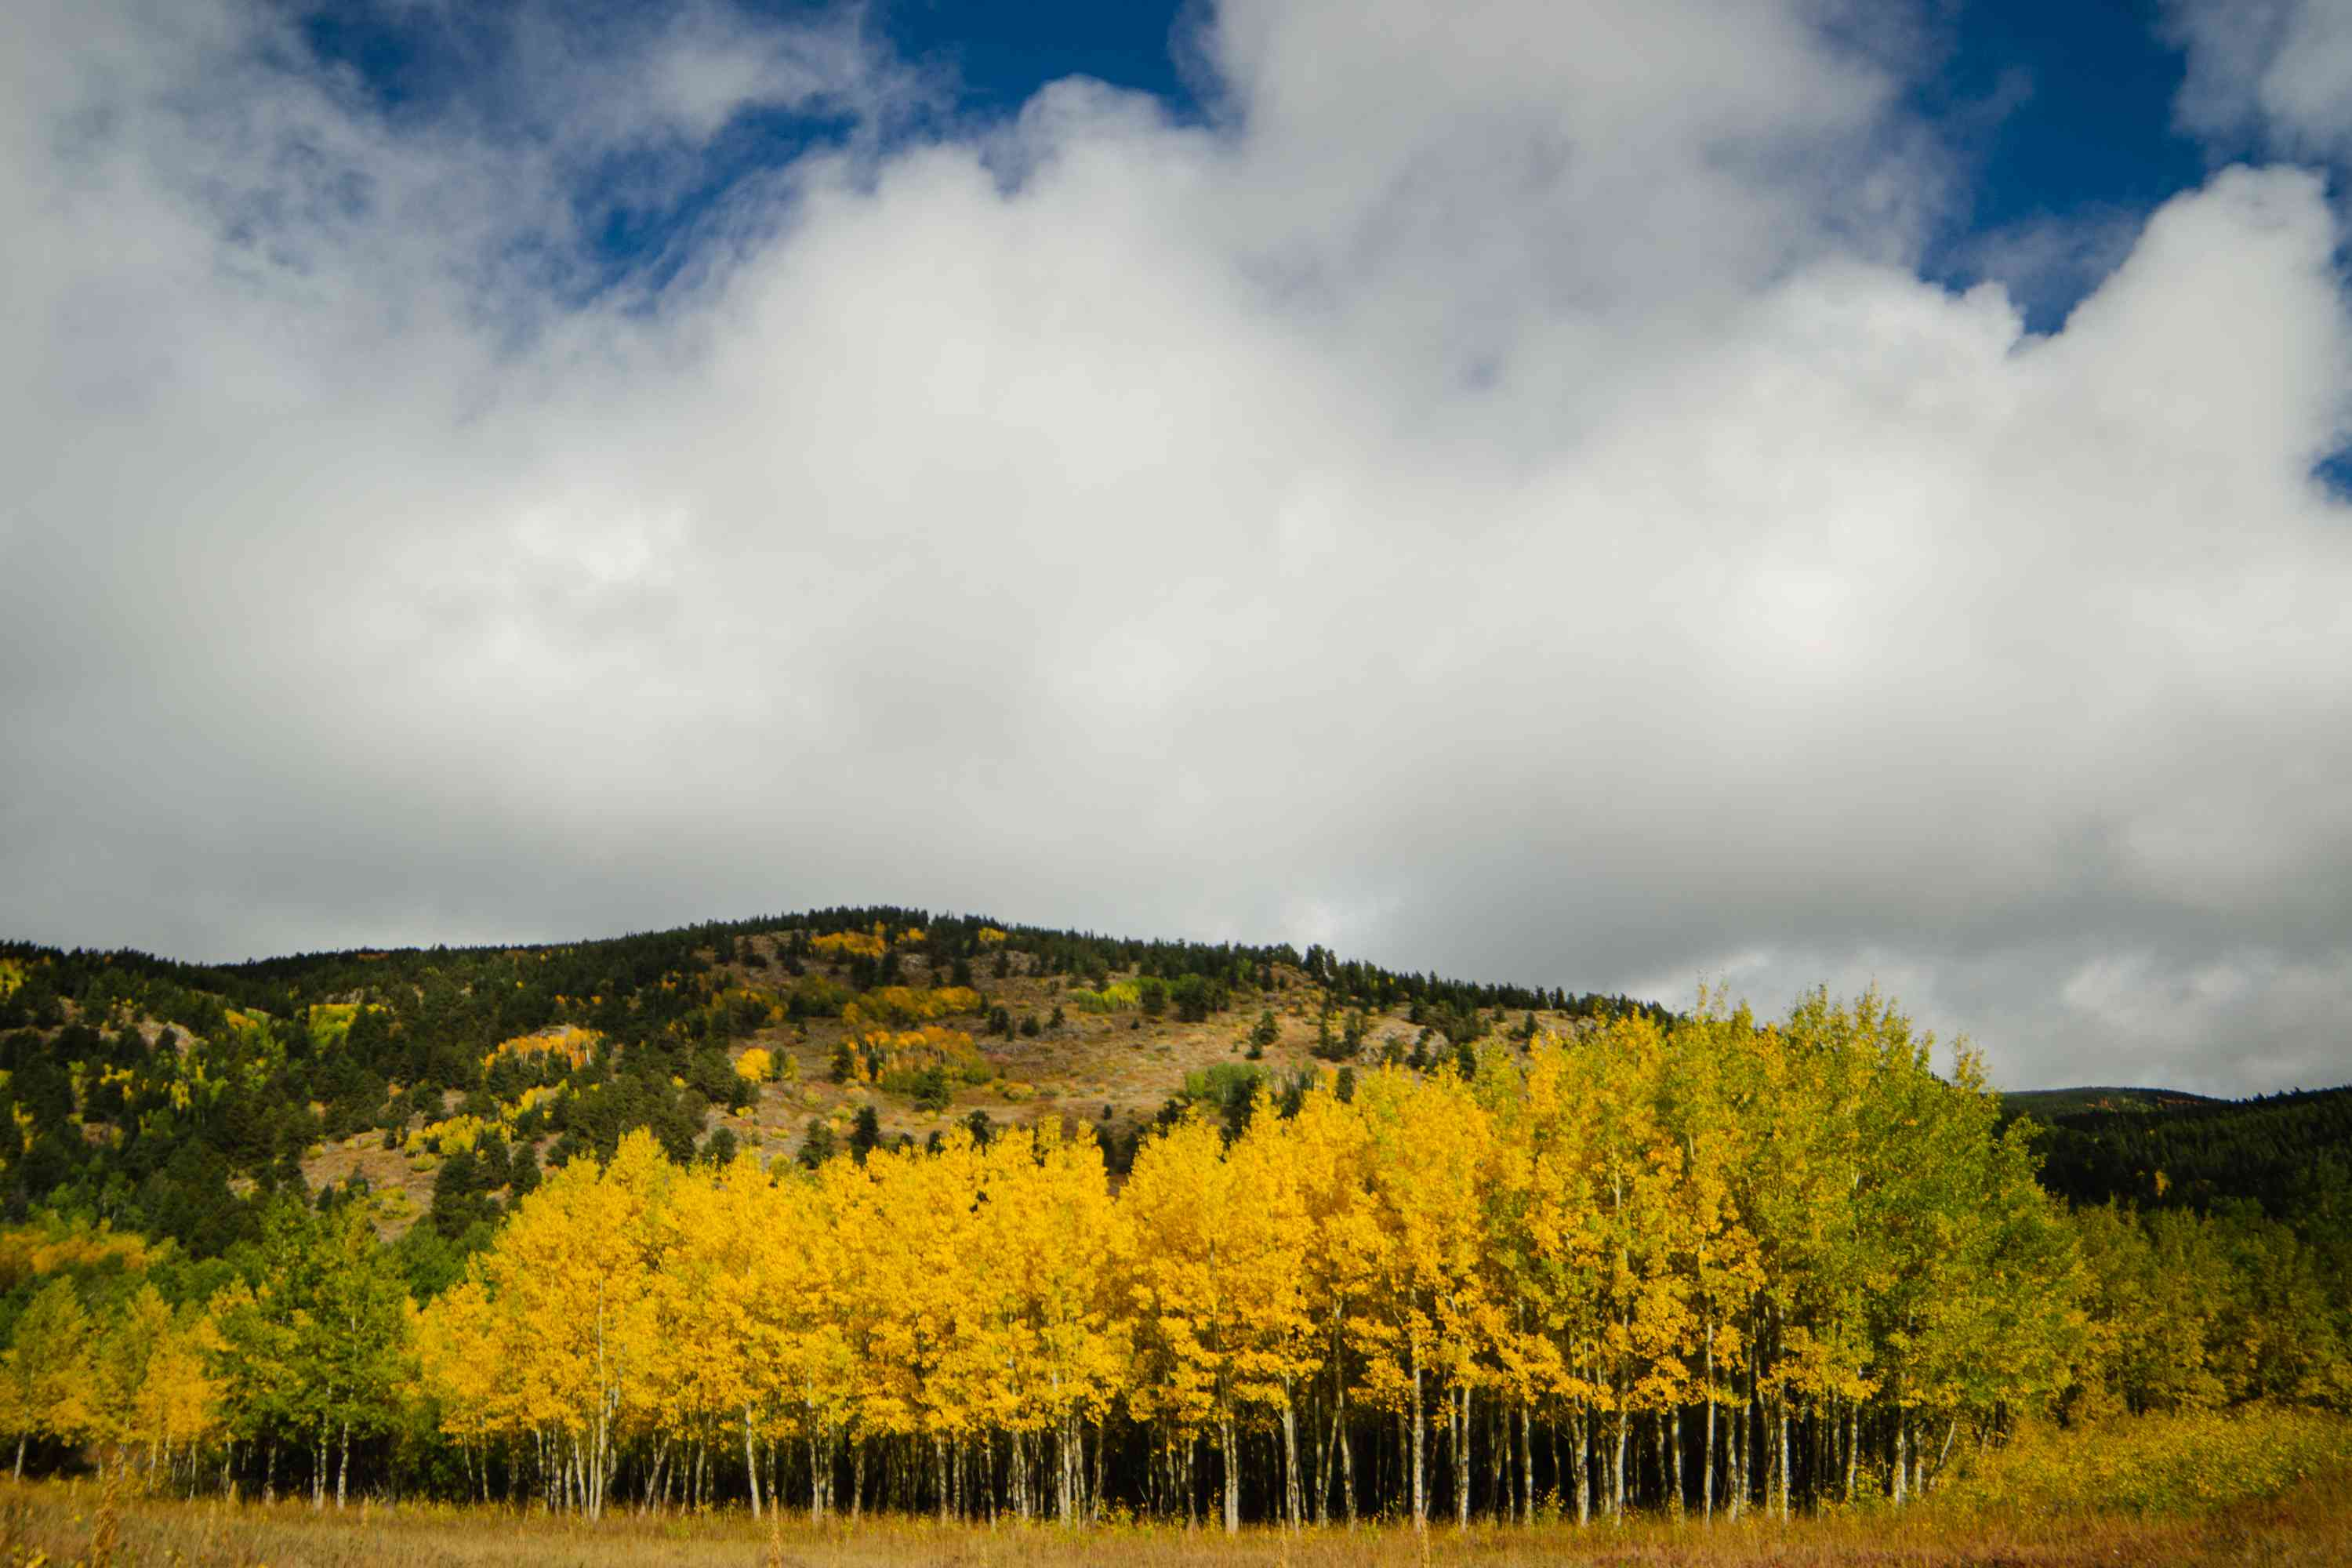 Quaking aspen trees with golden-yellow and green leaves in front of mountainside